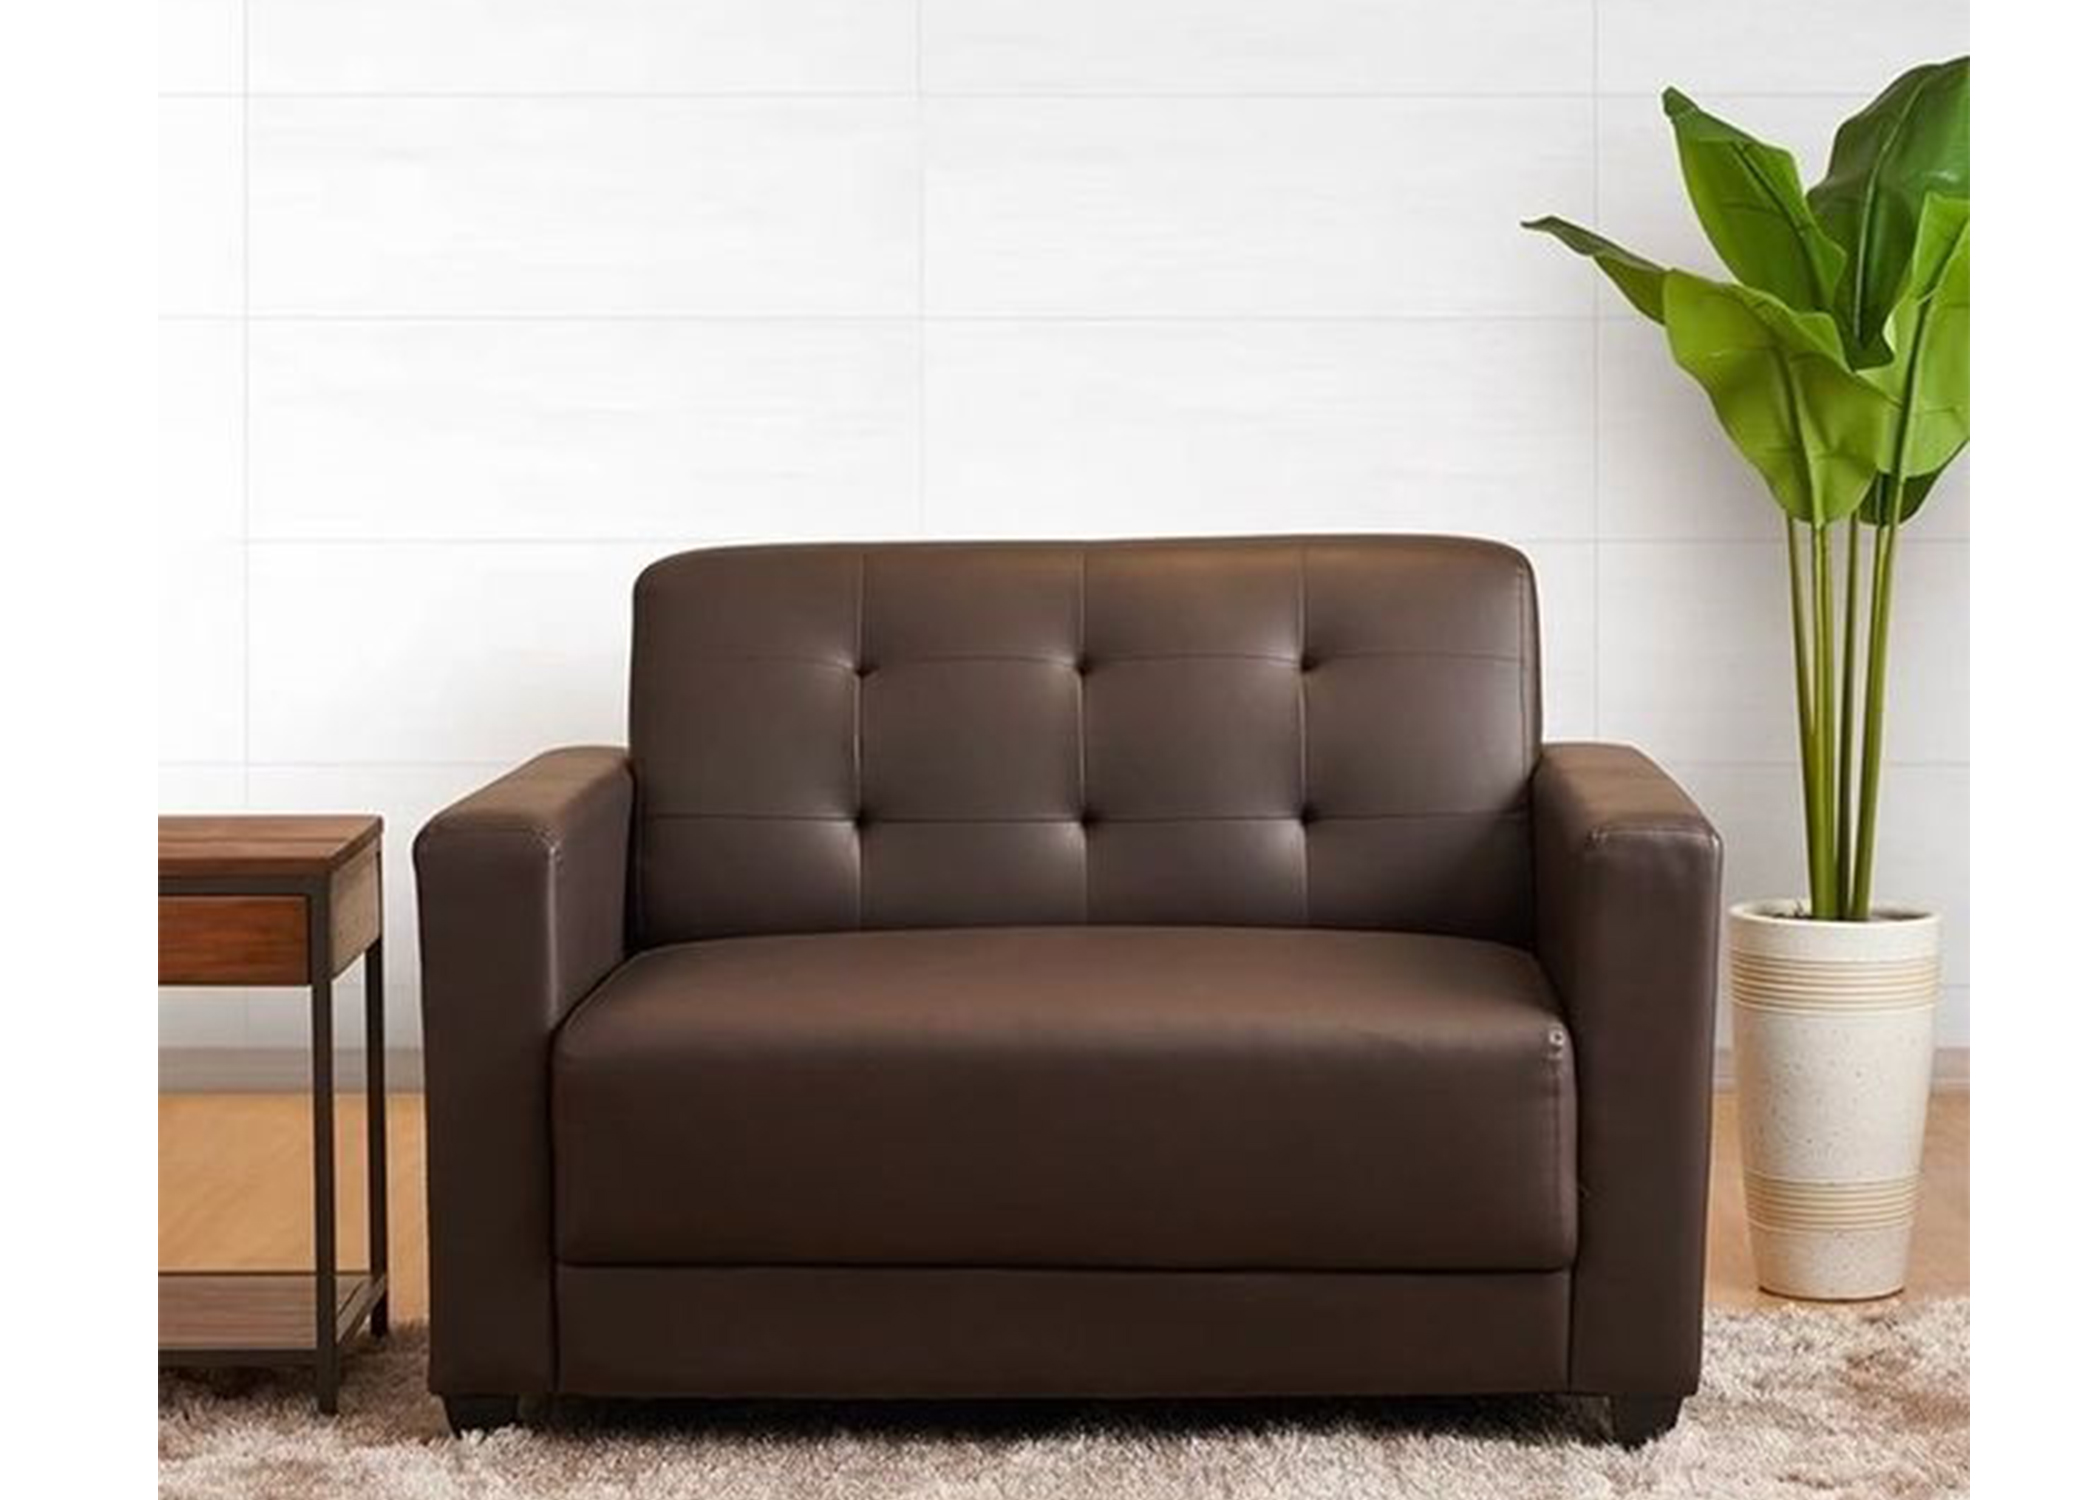 Give Dad a gift of comfort and joy this Father's Day with special seat from SM Home